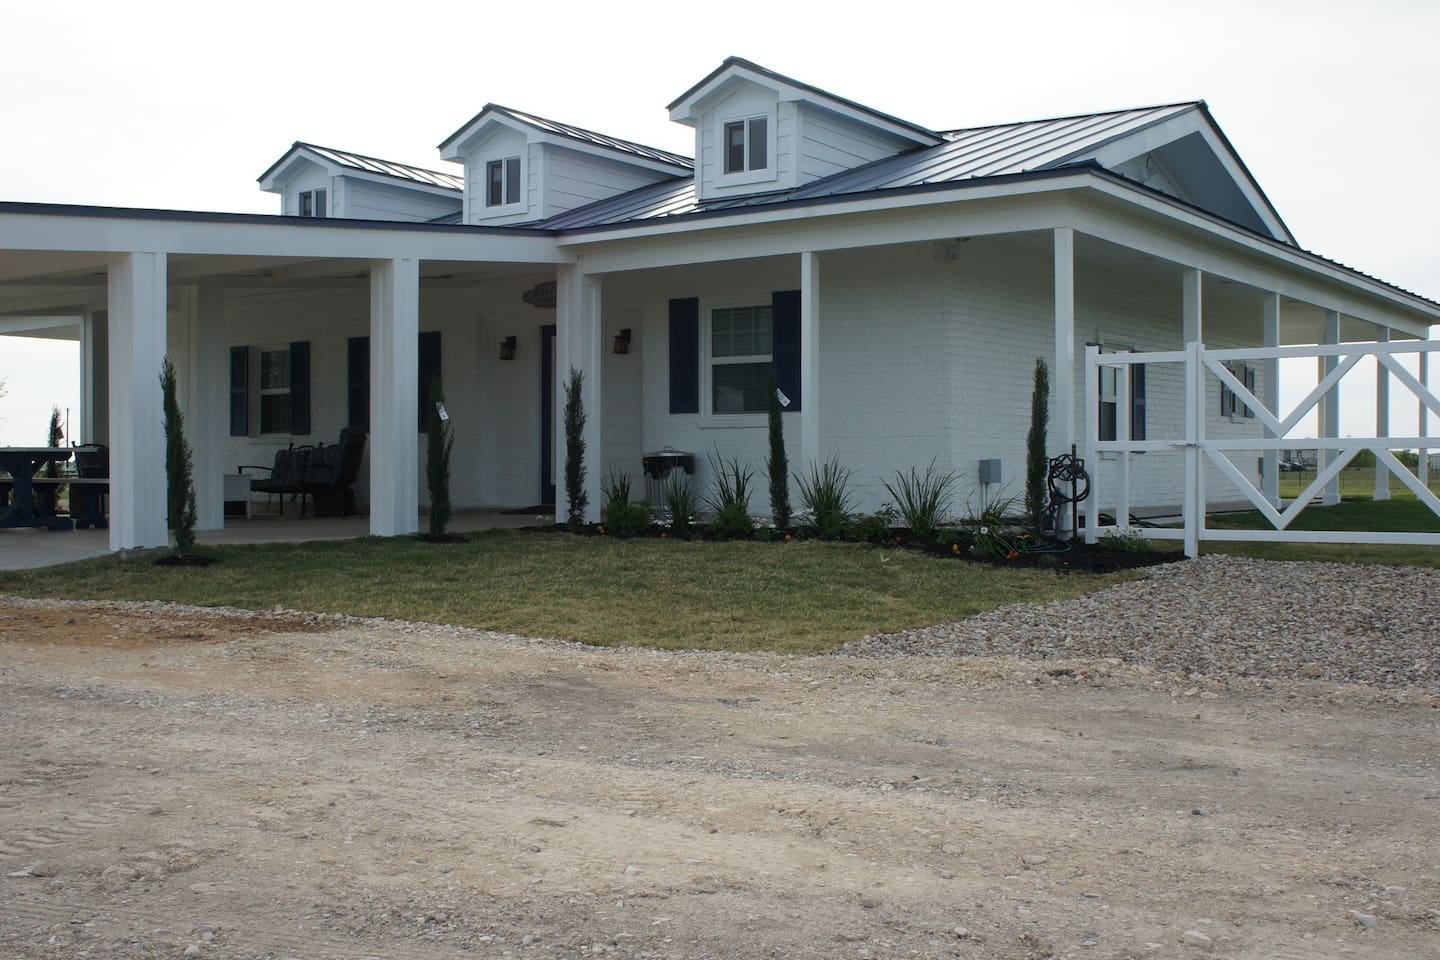 Newly renovated Country Victorian style Cabin on 46 acres. On a hill on look the valley. Pond, fire pits, cows, and mini horse. The lazy relaxing country life 30 minutes from downtown Austin and 15 minutes from San Marcos. Come enjoy a beautiful stay